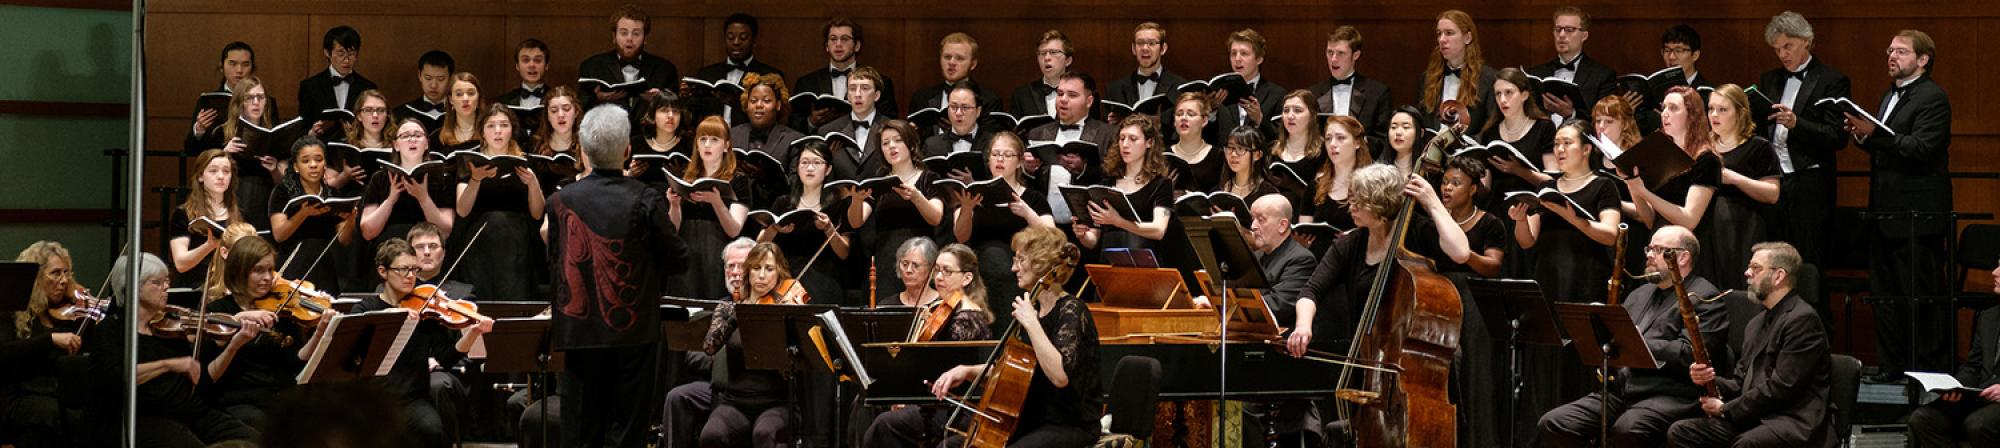 Grinnell Singers in concert